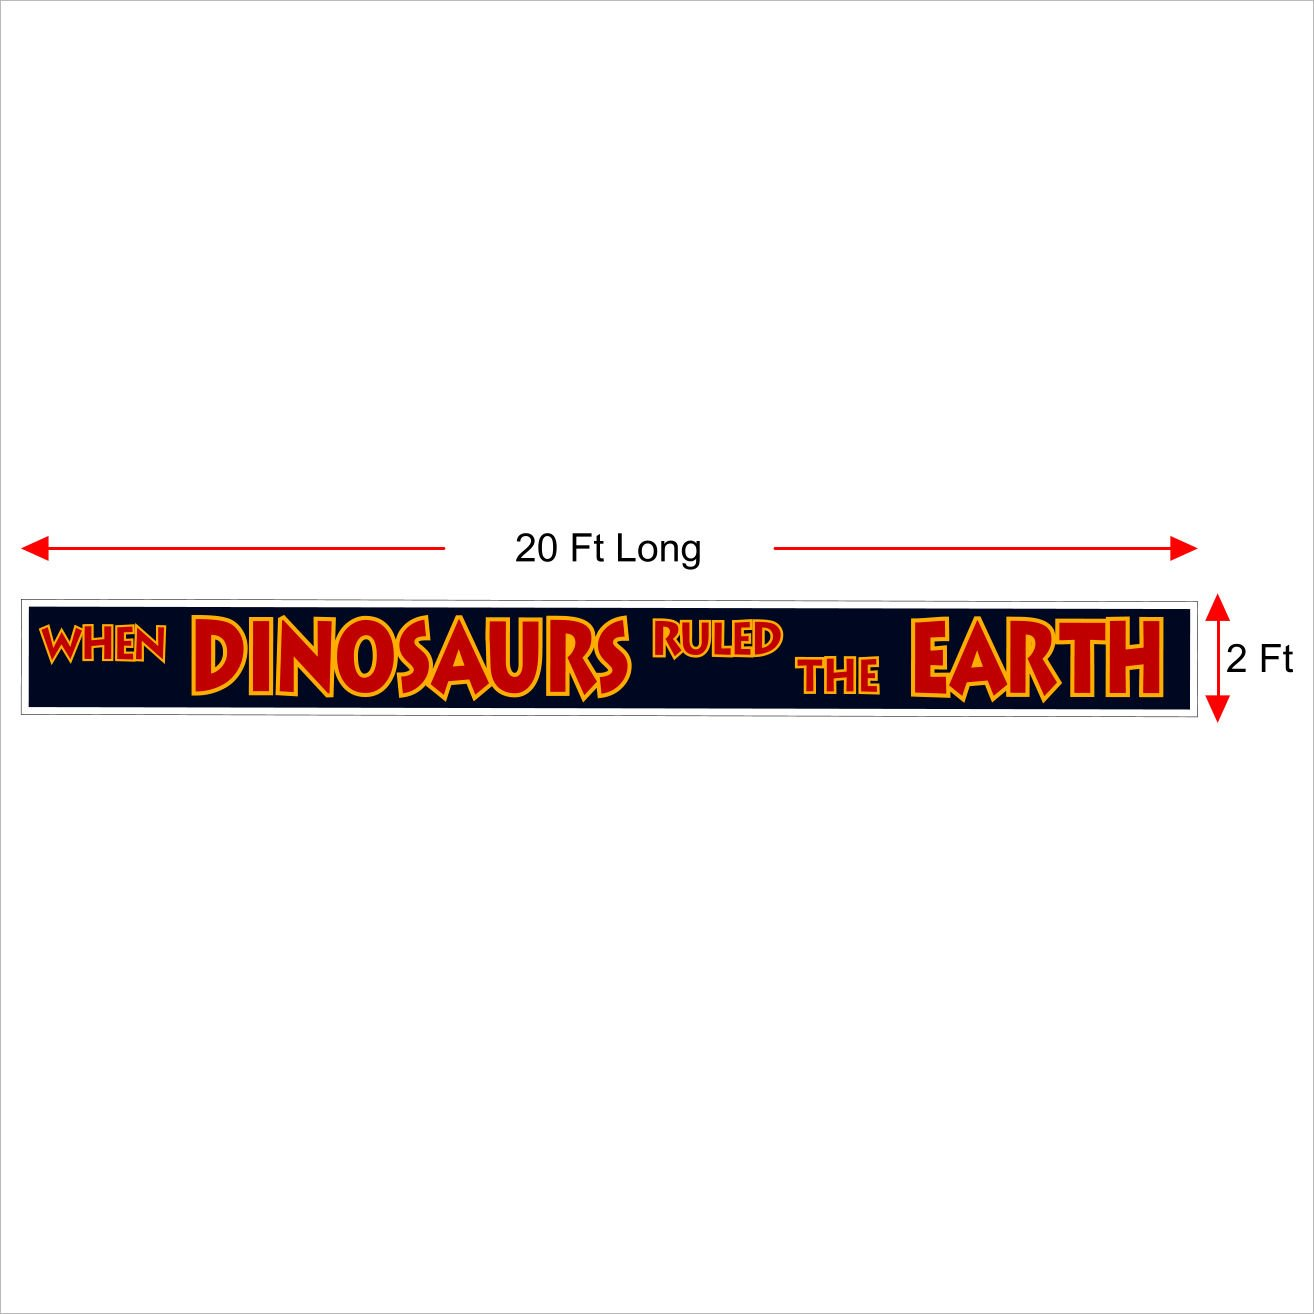 Jurassic Park Banner Sign Replica - Great for the Jurassic Park World Movie Fan That Loves Dinosaur Props -Toys, Games, Shirts. Outdoor Quality 20 Ft Long (2FT x 20FT)